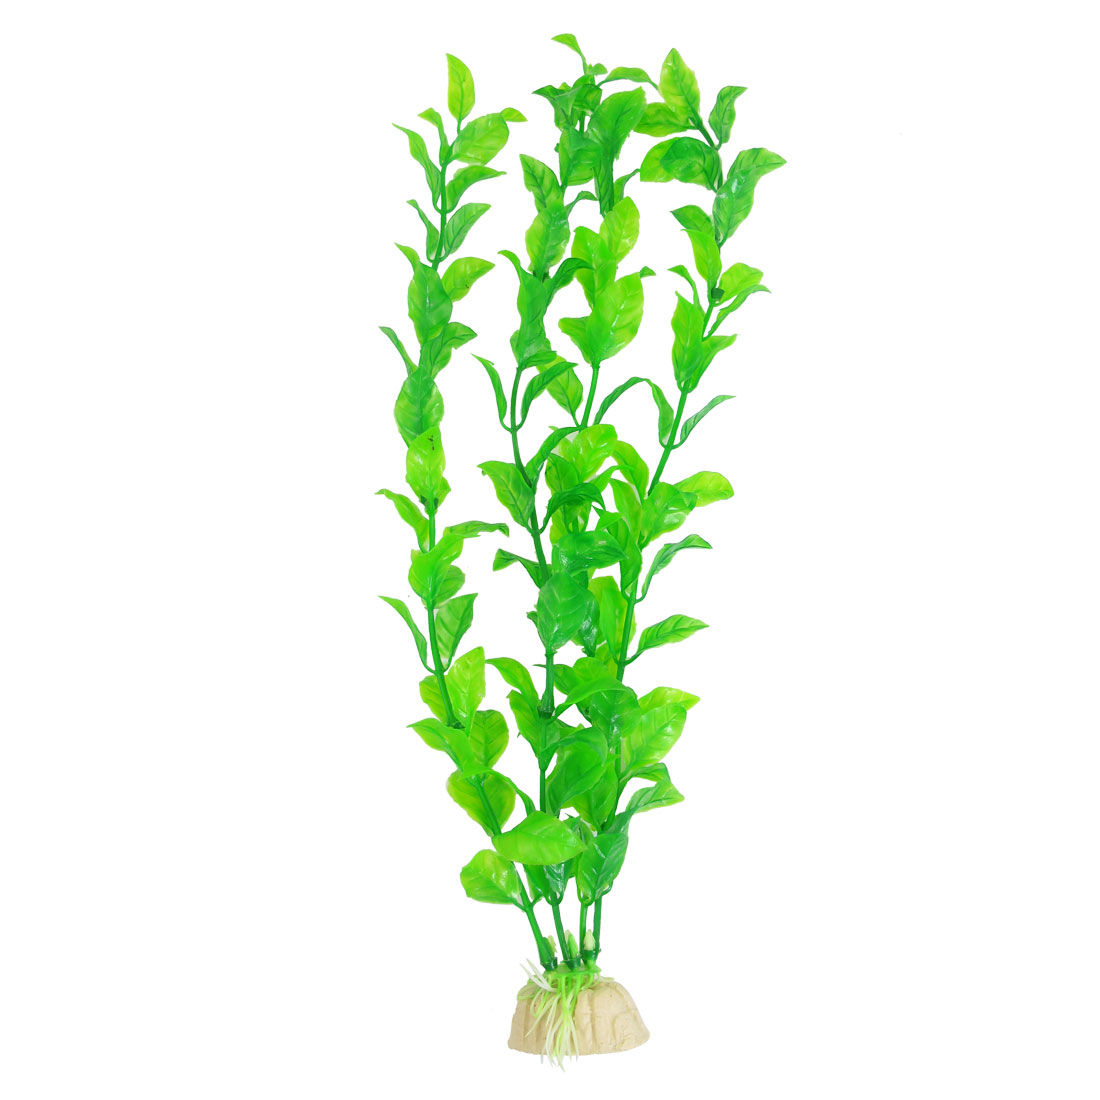 "12.6"" High Green Leaf Underwater Plant Decor for Aquarium Fish Tank"